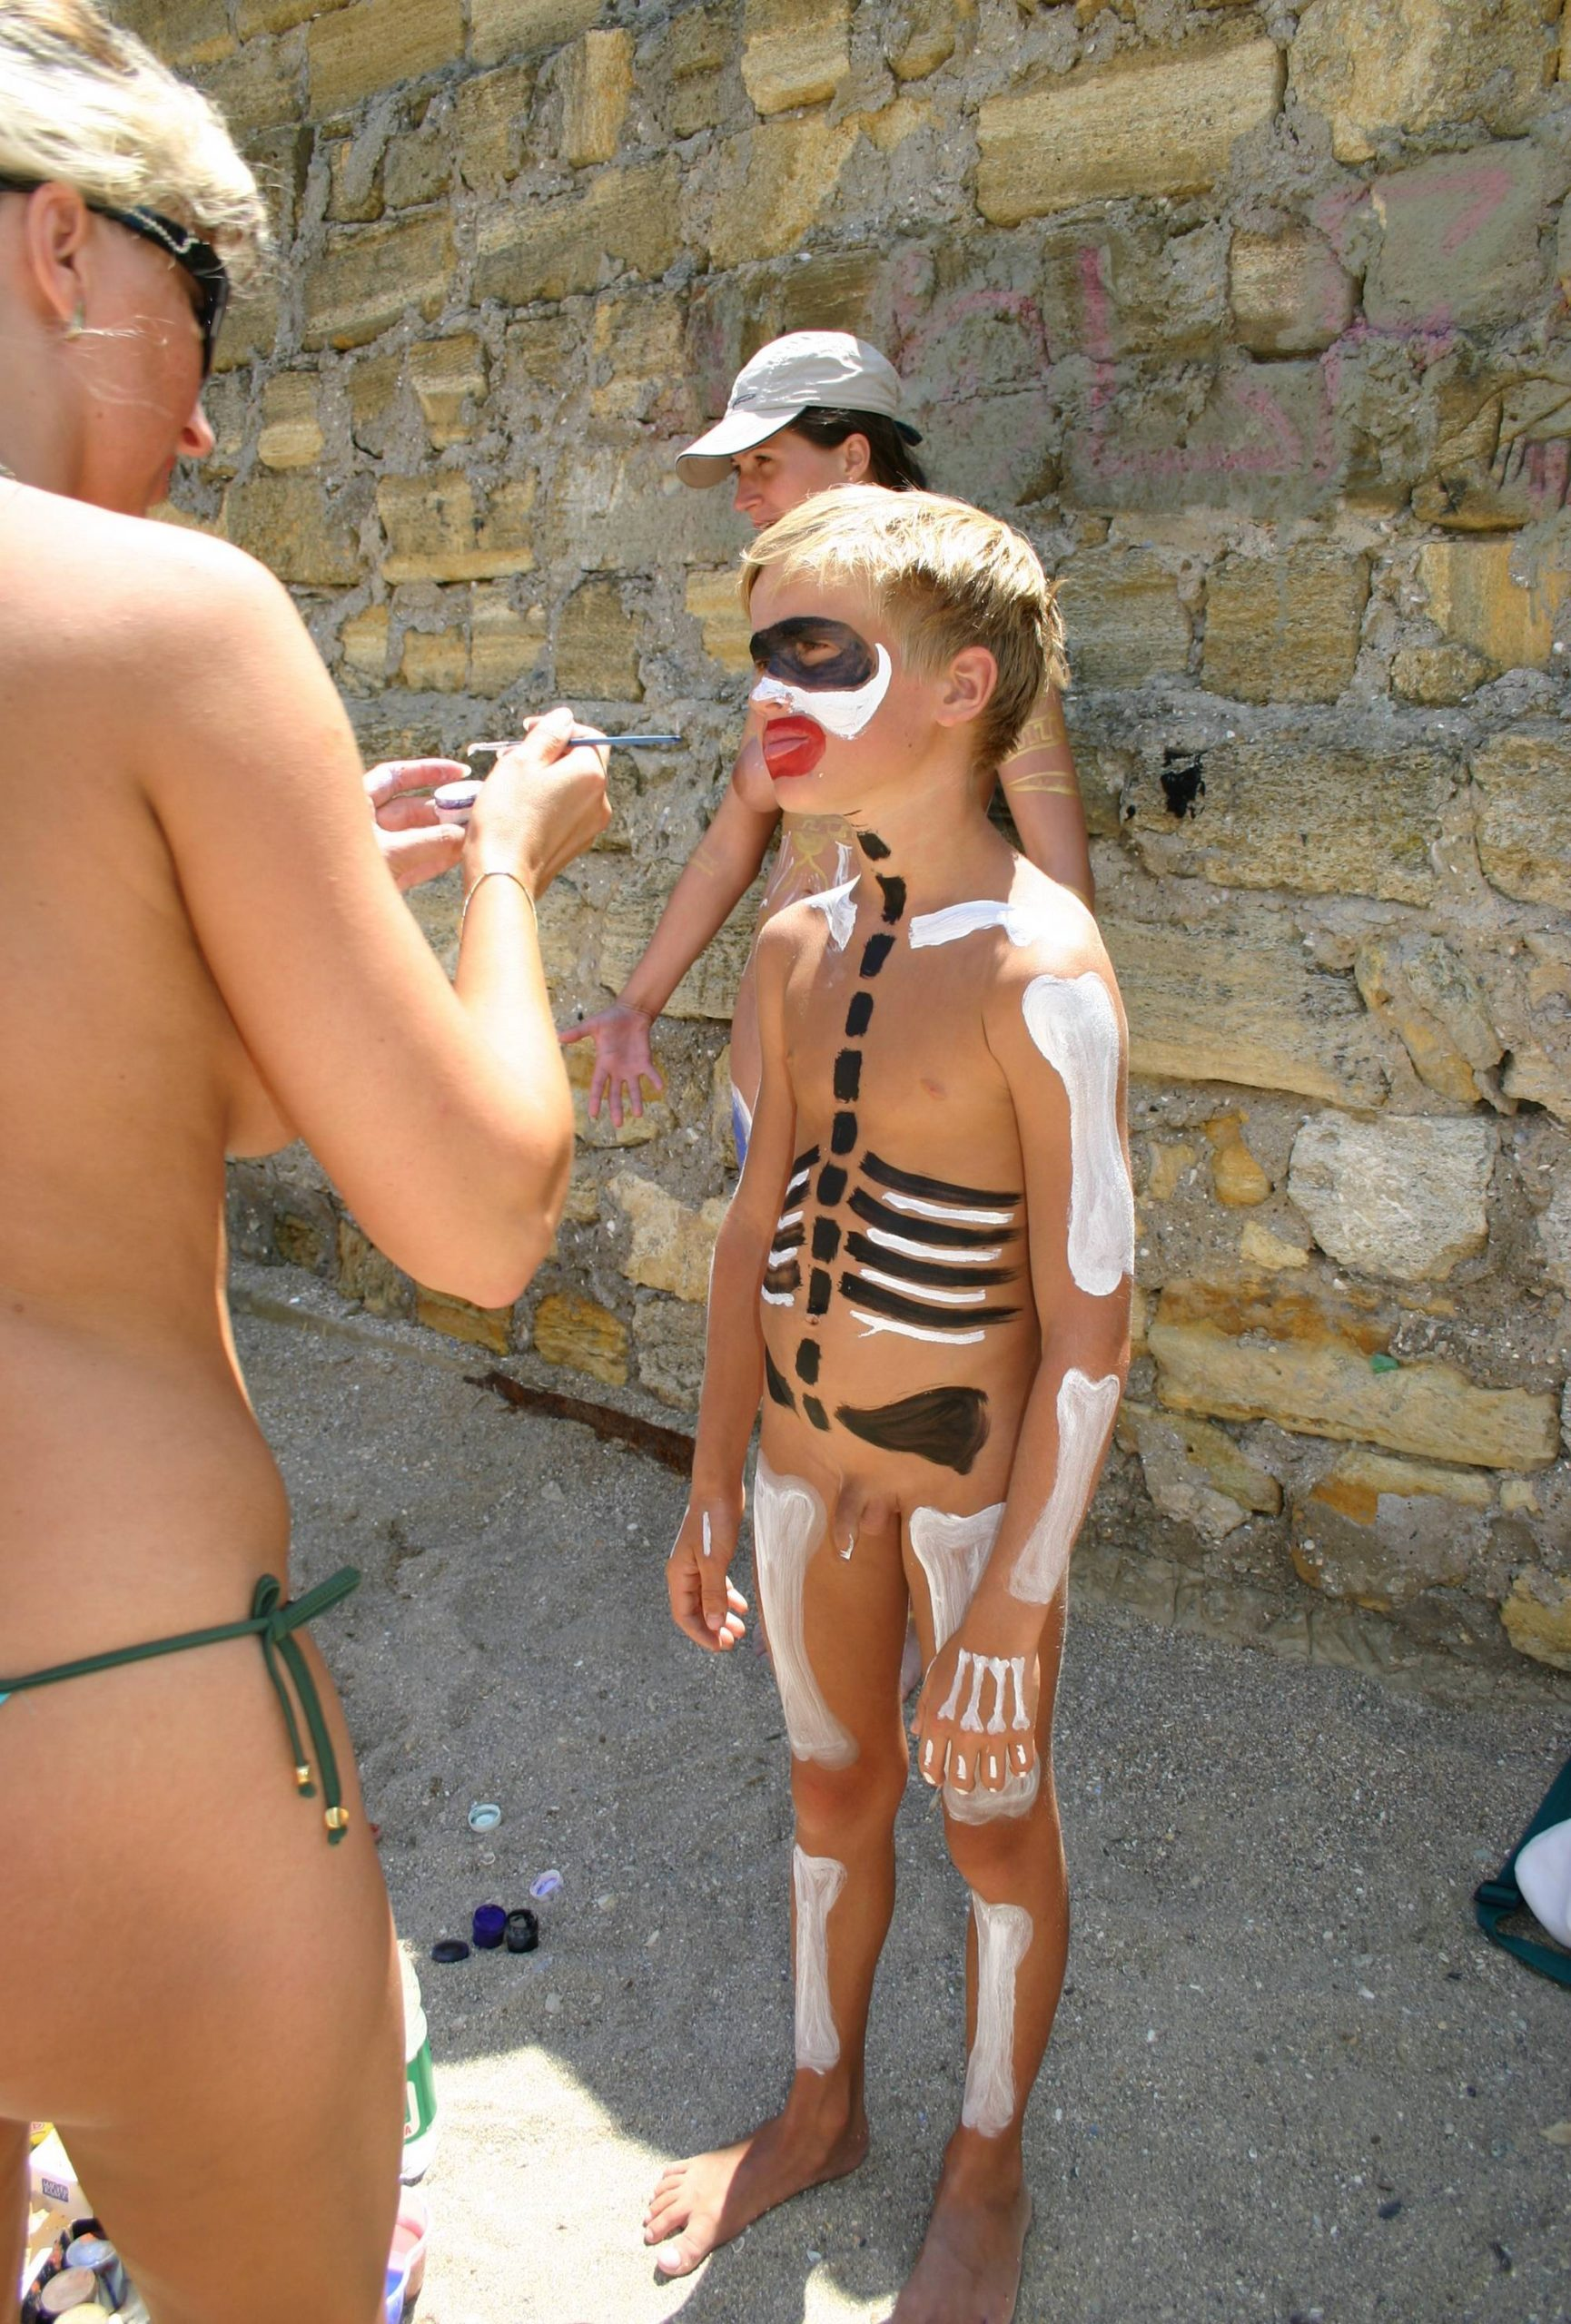 Pure Nudism Images-Odessa Bodypaint Profiles - 2